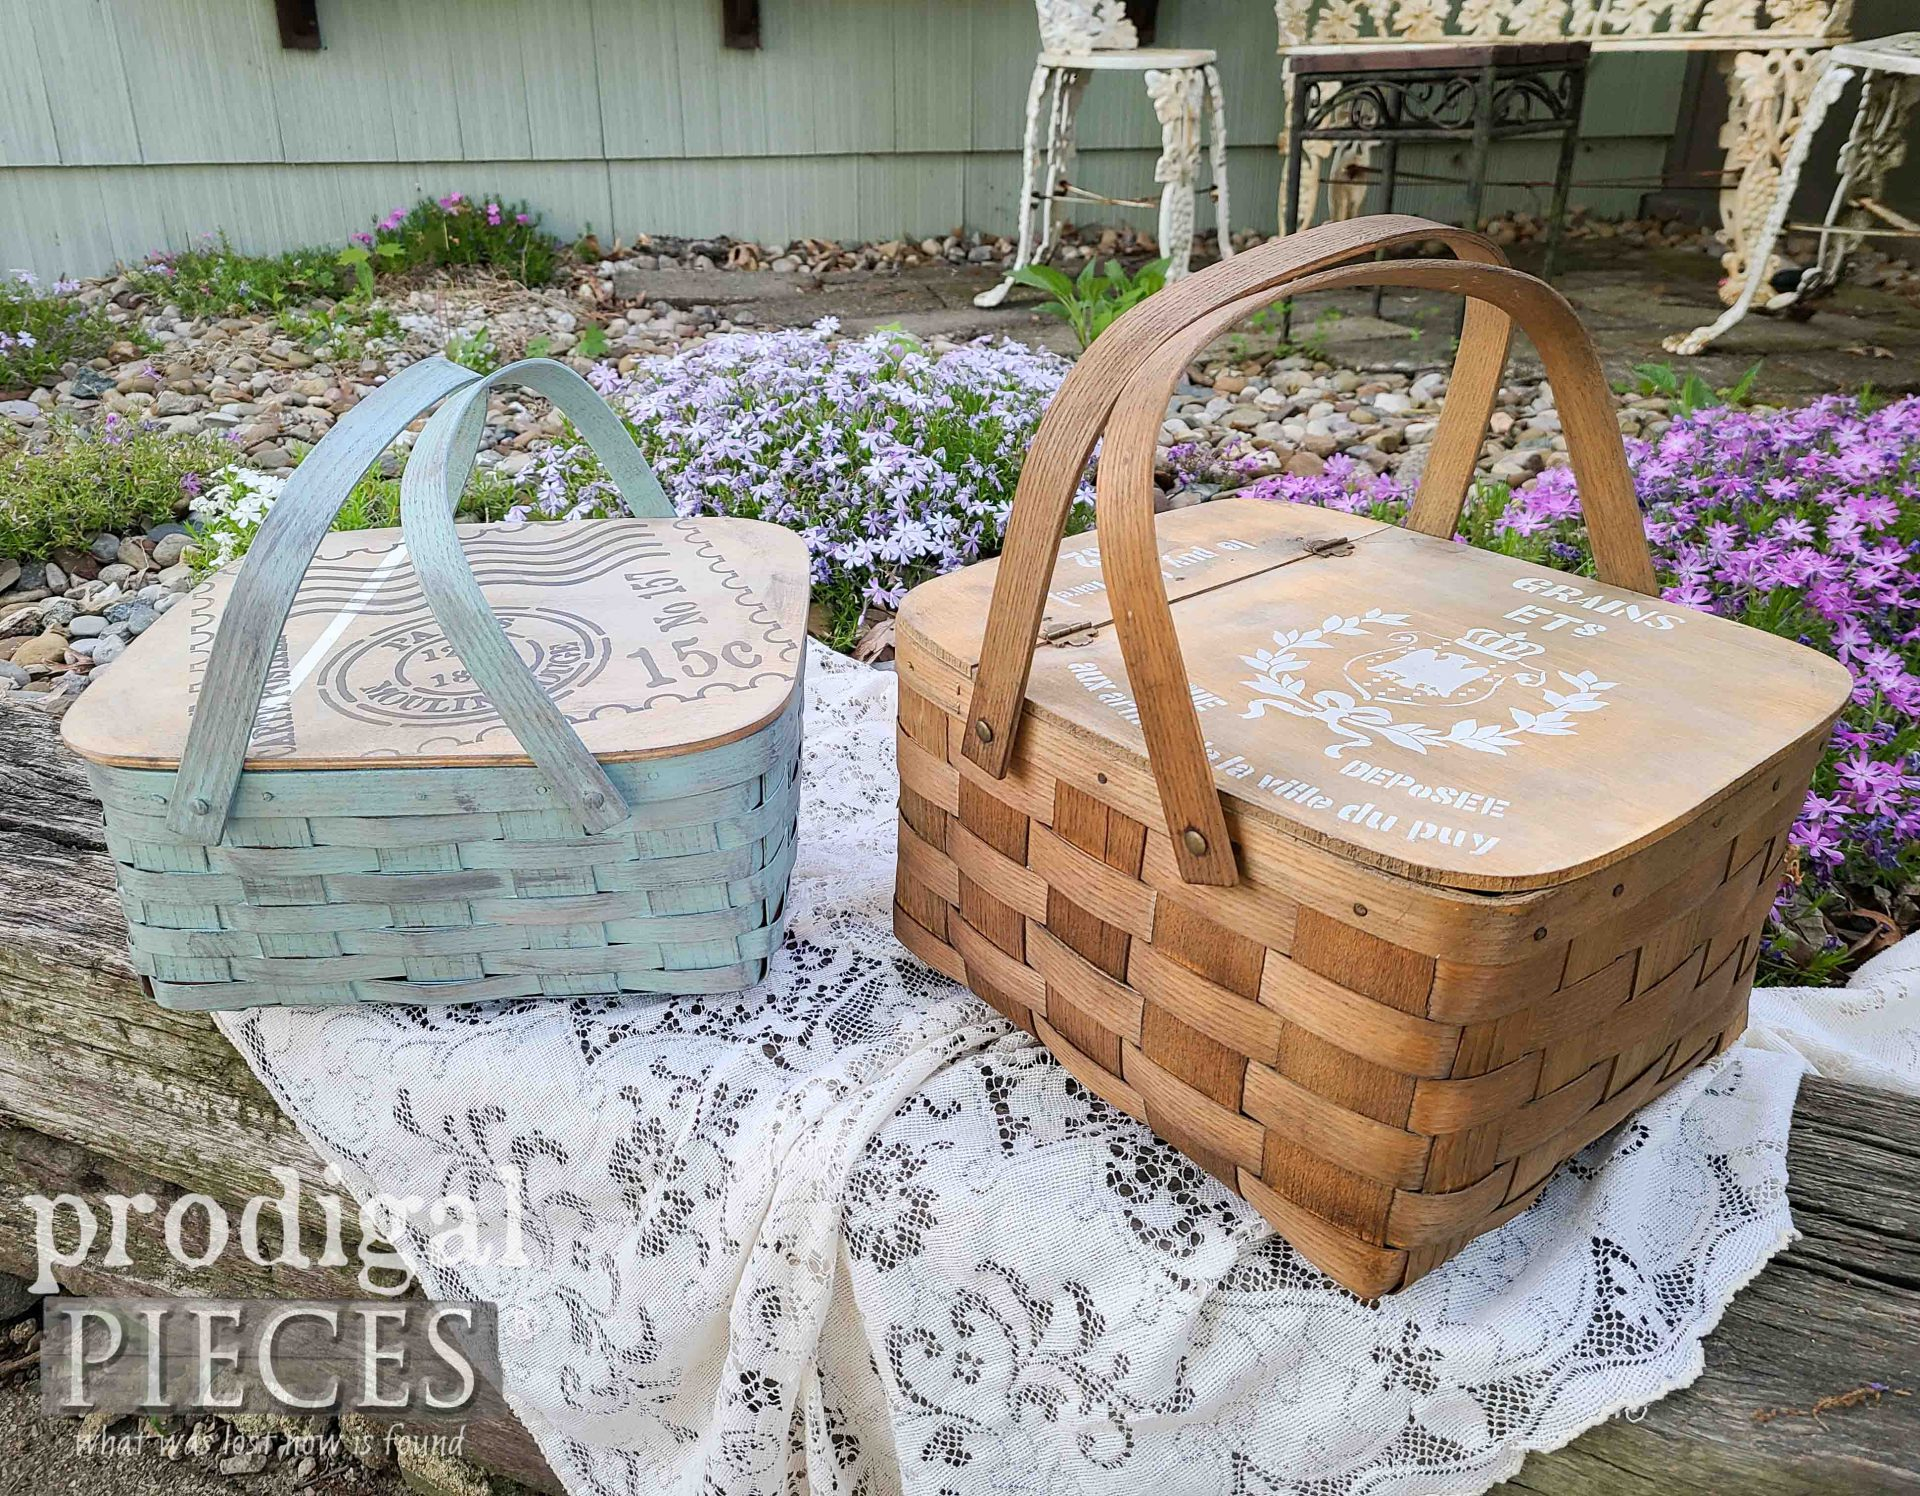 Summer Time Picnic with Vintage Upcycled Baskets by Prodigal Pieces | prodigalpieces.com #prodigalpieces #summer #picnic #basket